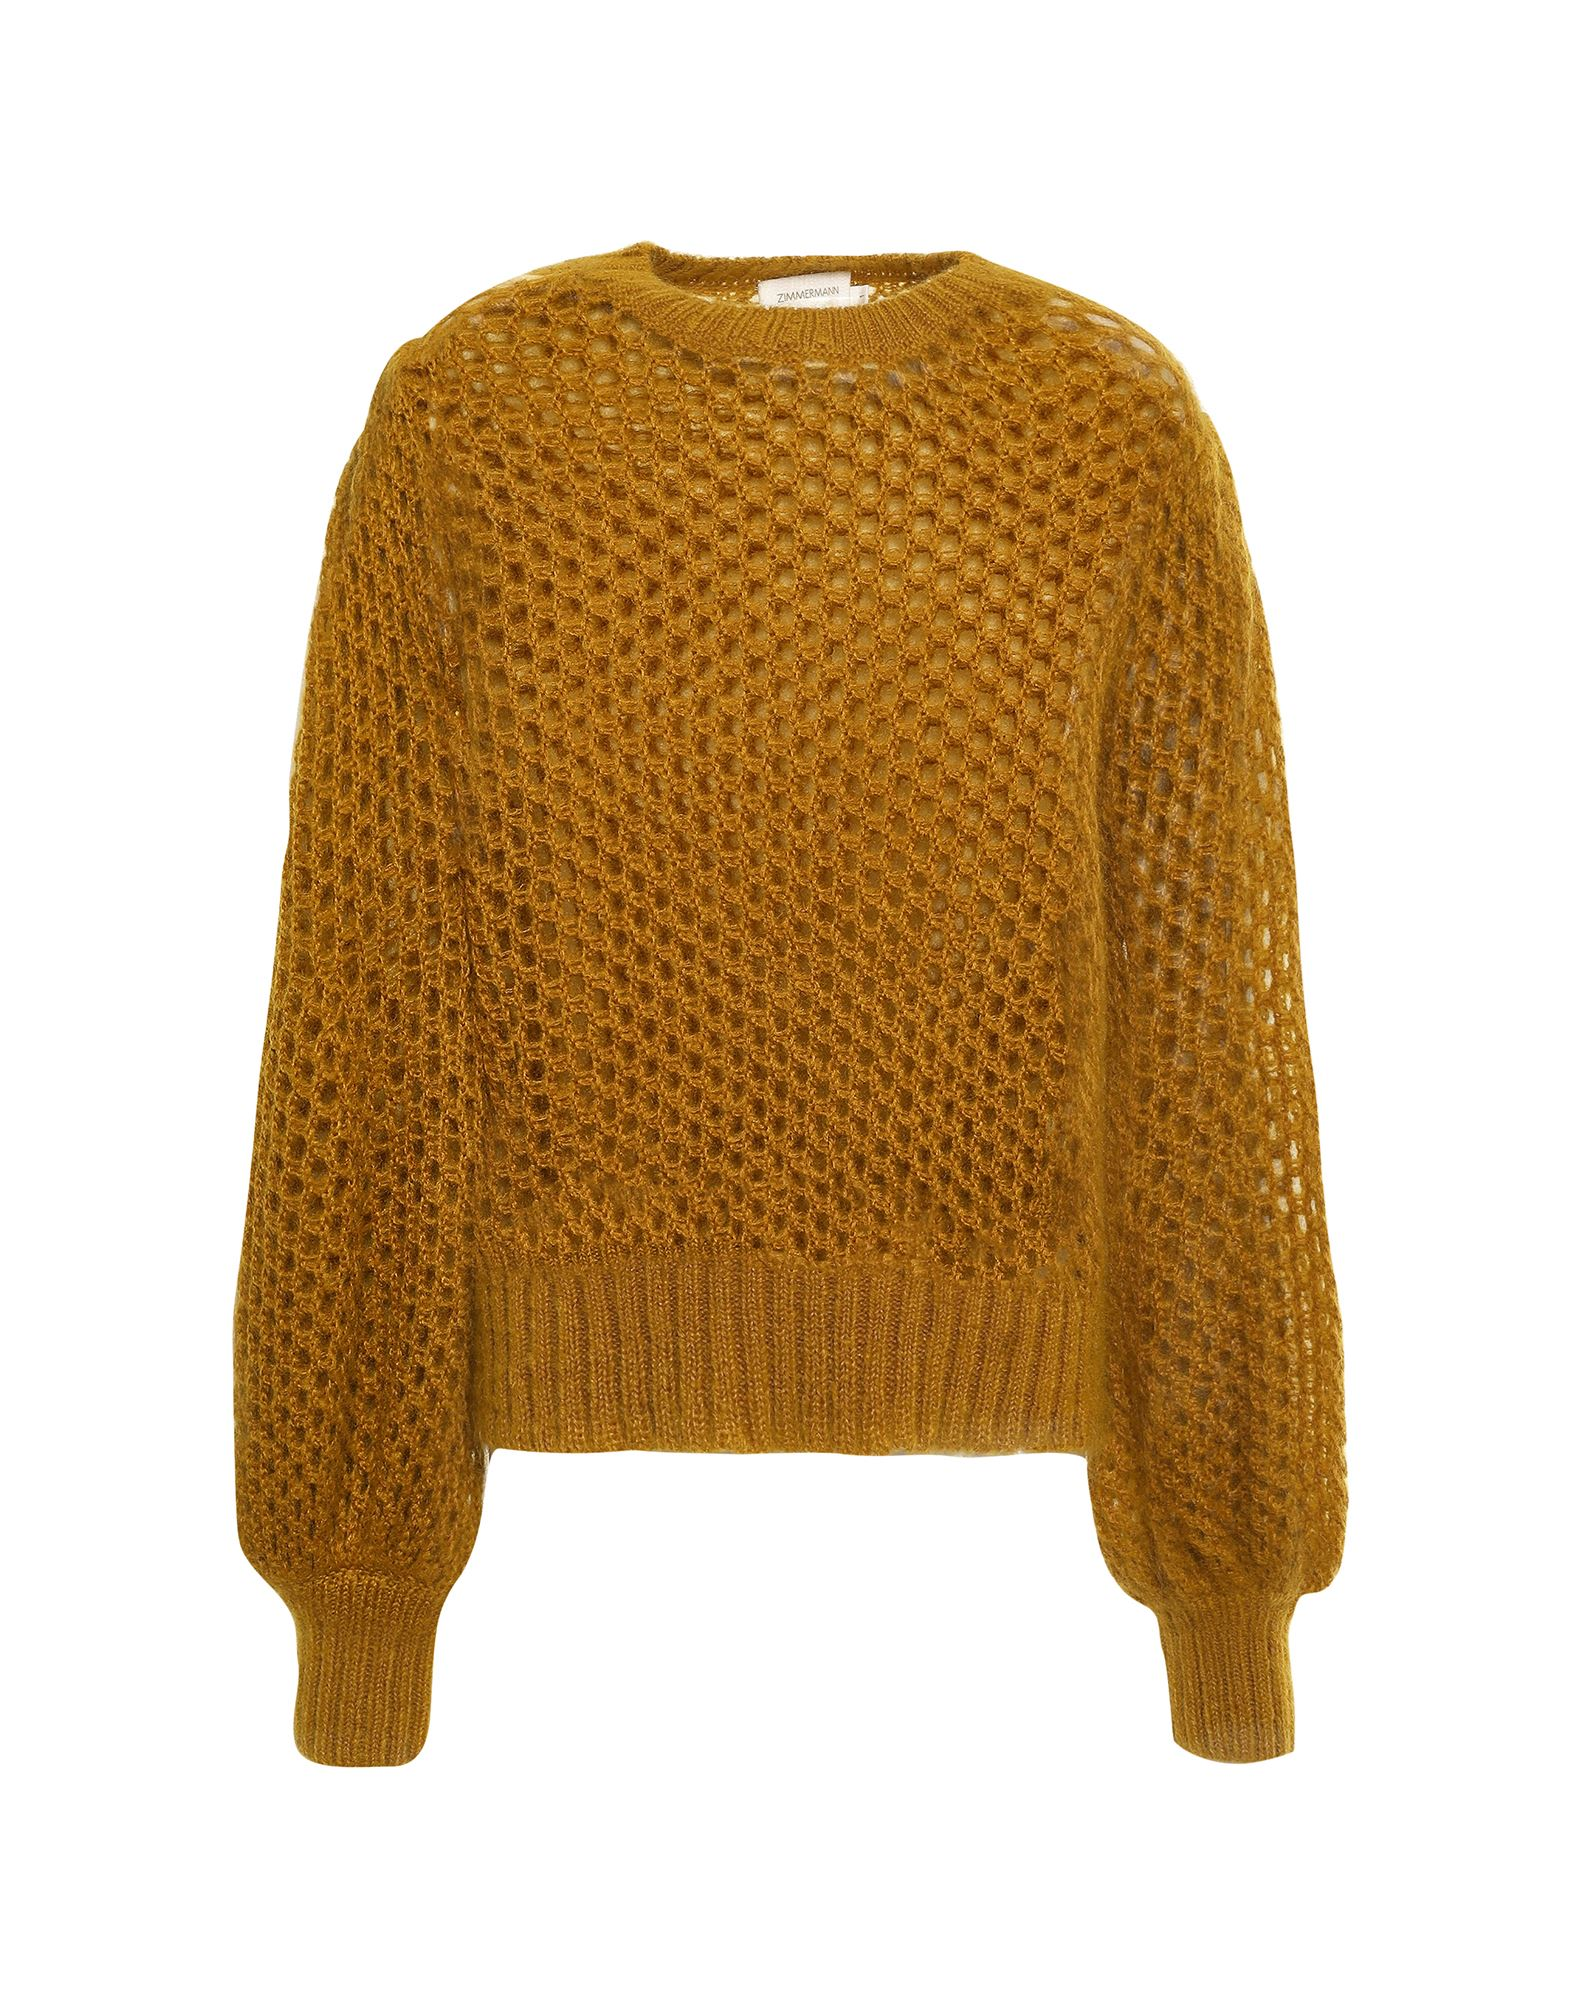 ZIMMERMANN Sweaters. knitted, no appliqués, basic solid color, round collar, medium-weight sweater, long sleeves, no pockets, openwork. 55% Mohair wool, 30% Polyamide, 15% Wool